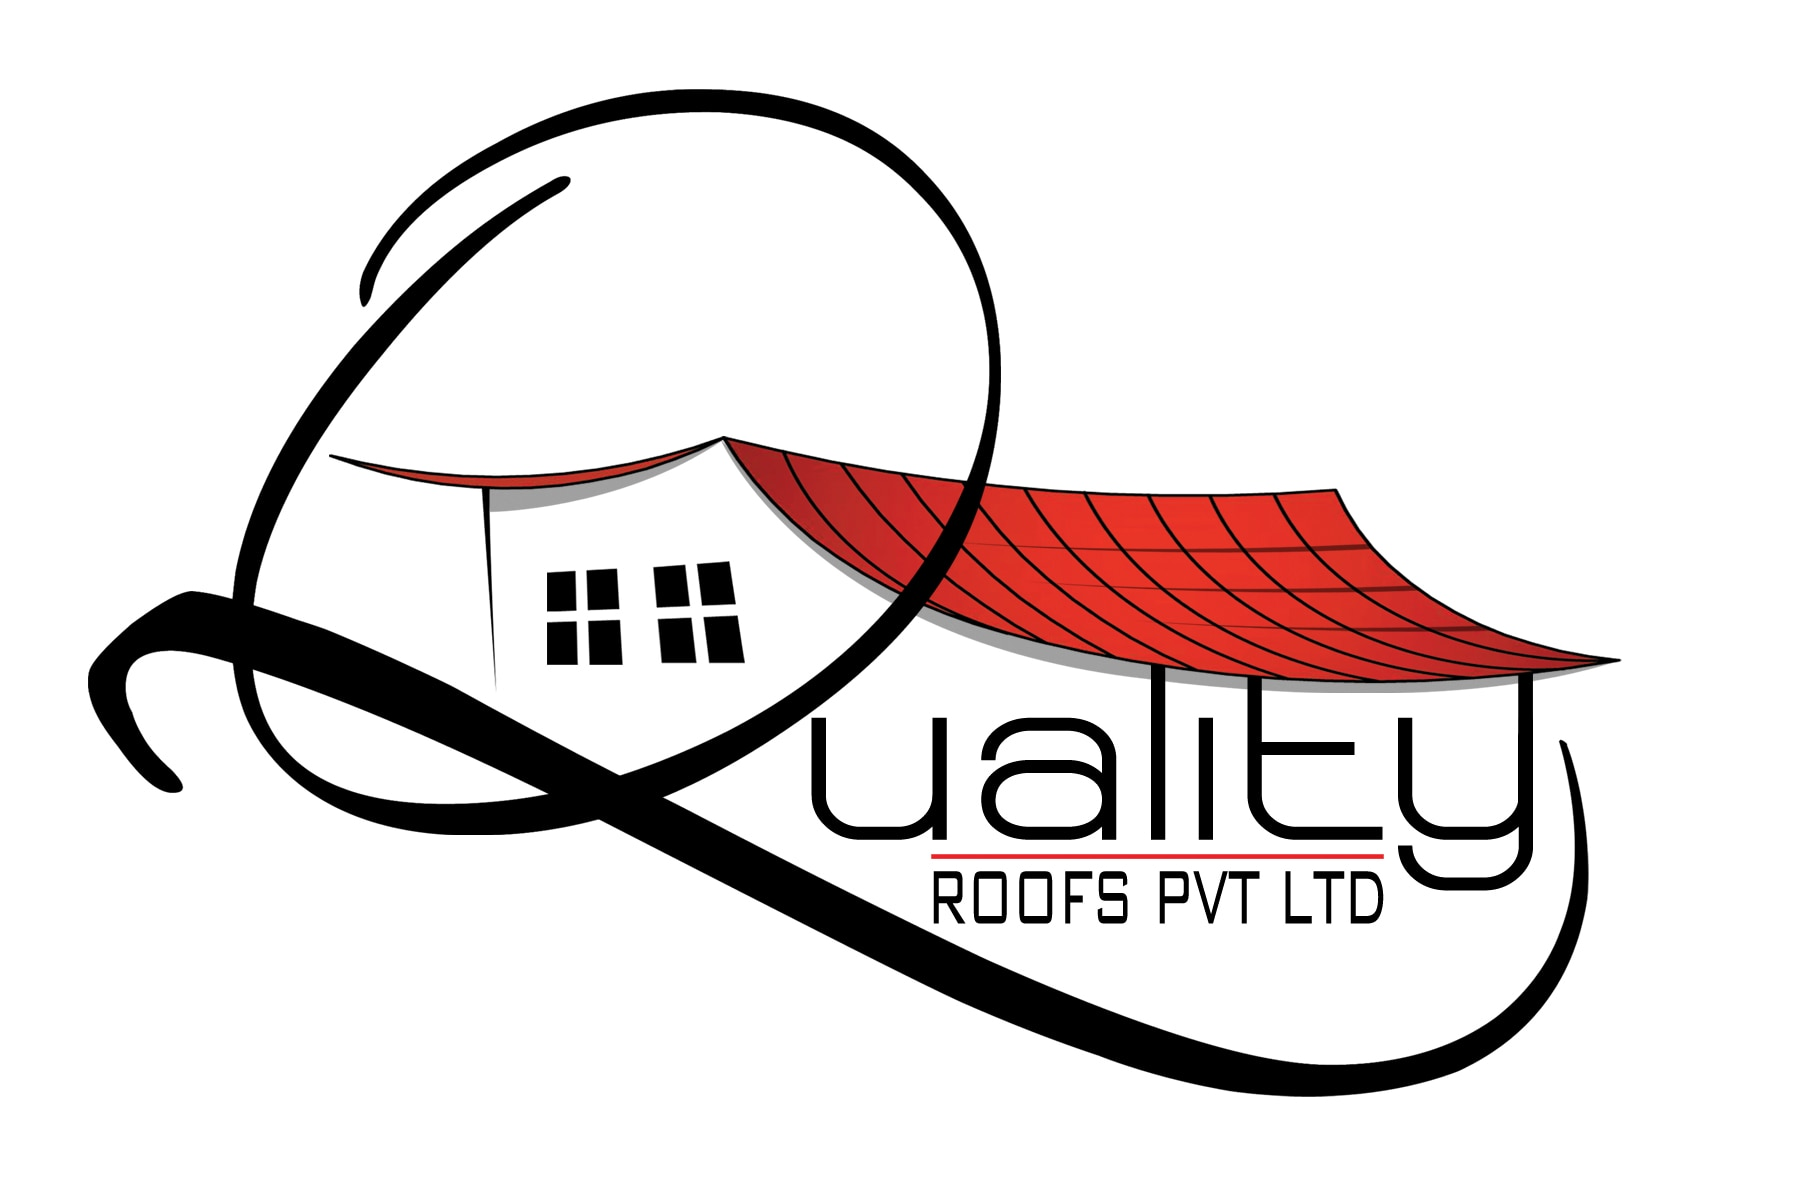 Quality Roofs Pvt Ltd                                            -   15 yrs  experience                                        -  1260  completed projects